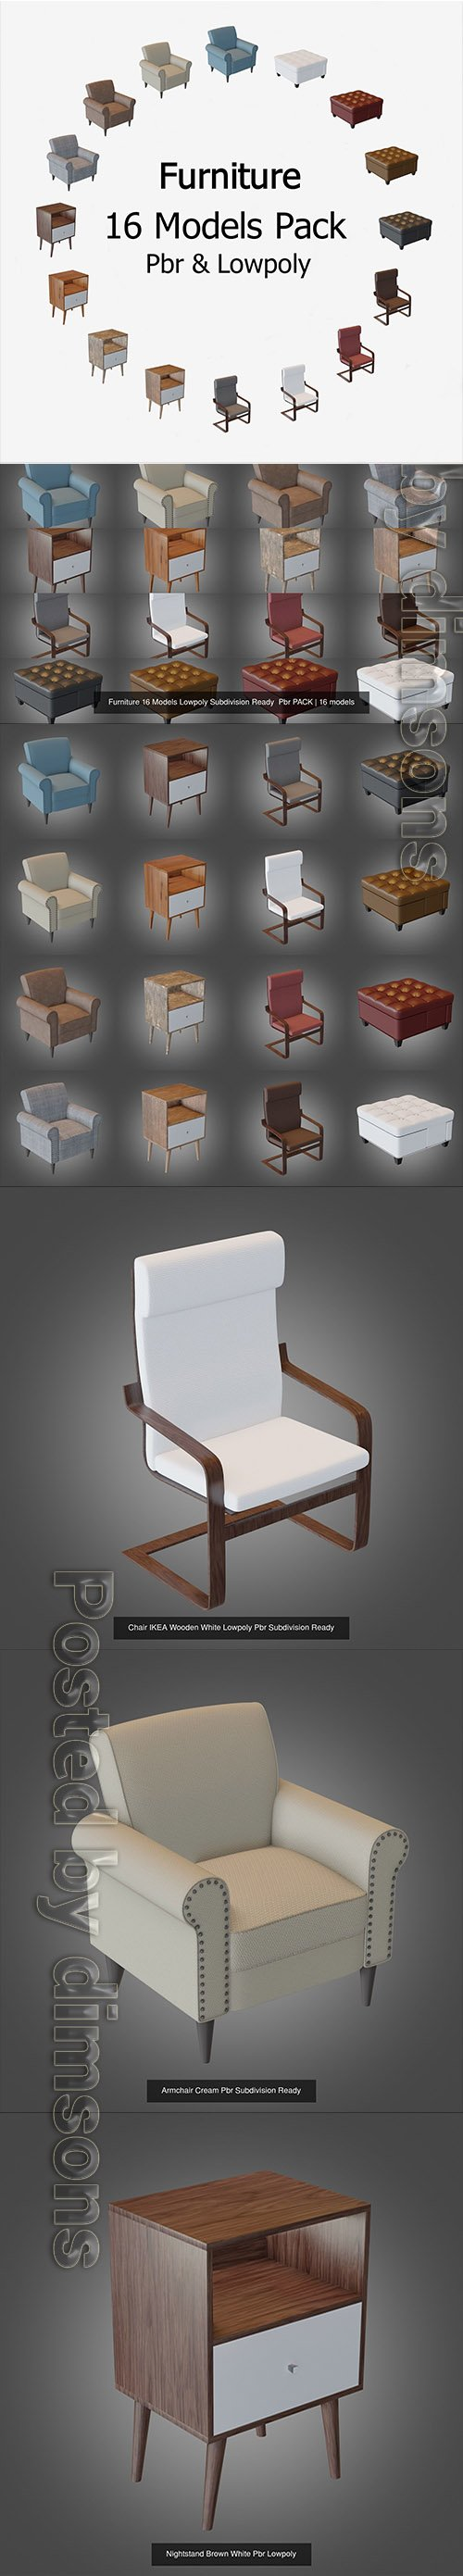 Furniture 16 Models Lowpoly Subdivision Ready Pbr PACK 3D Model Collection